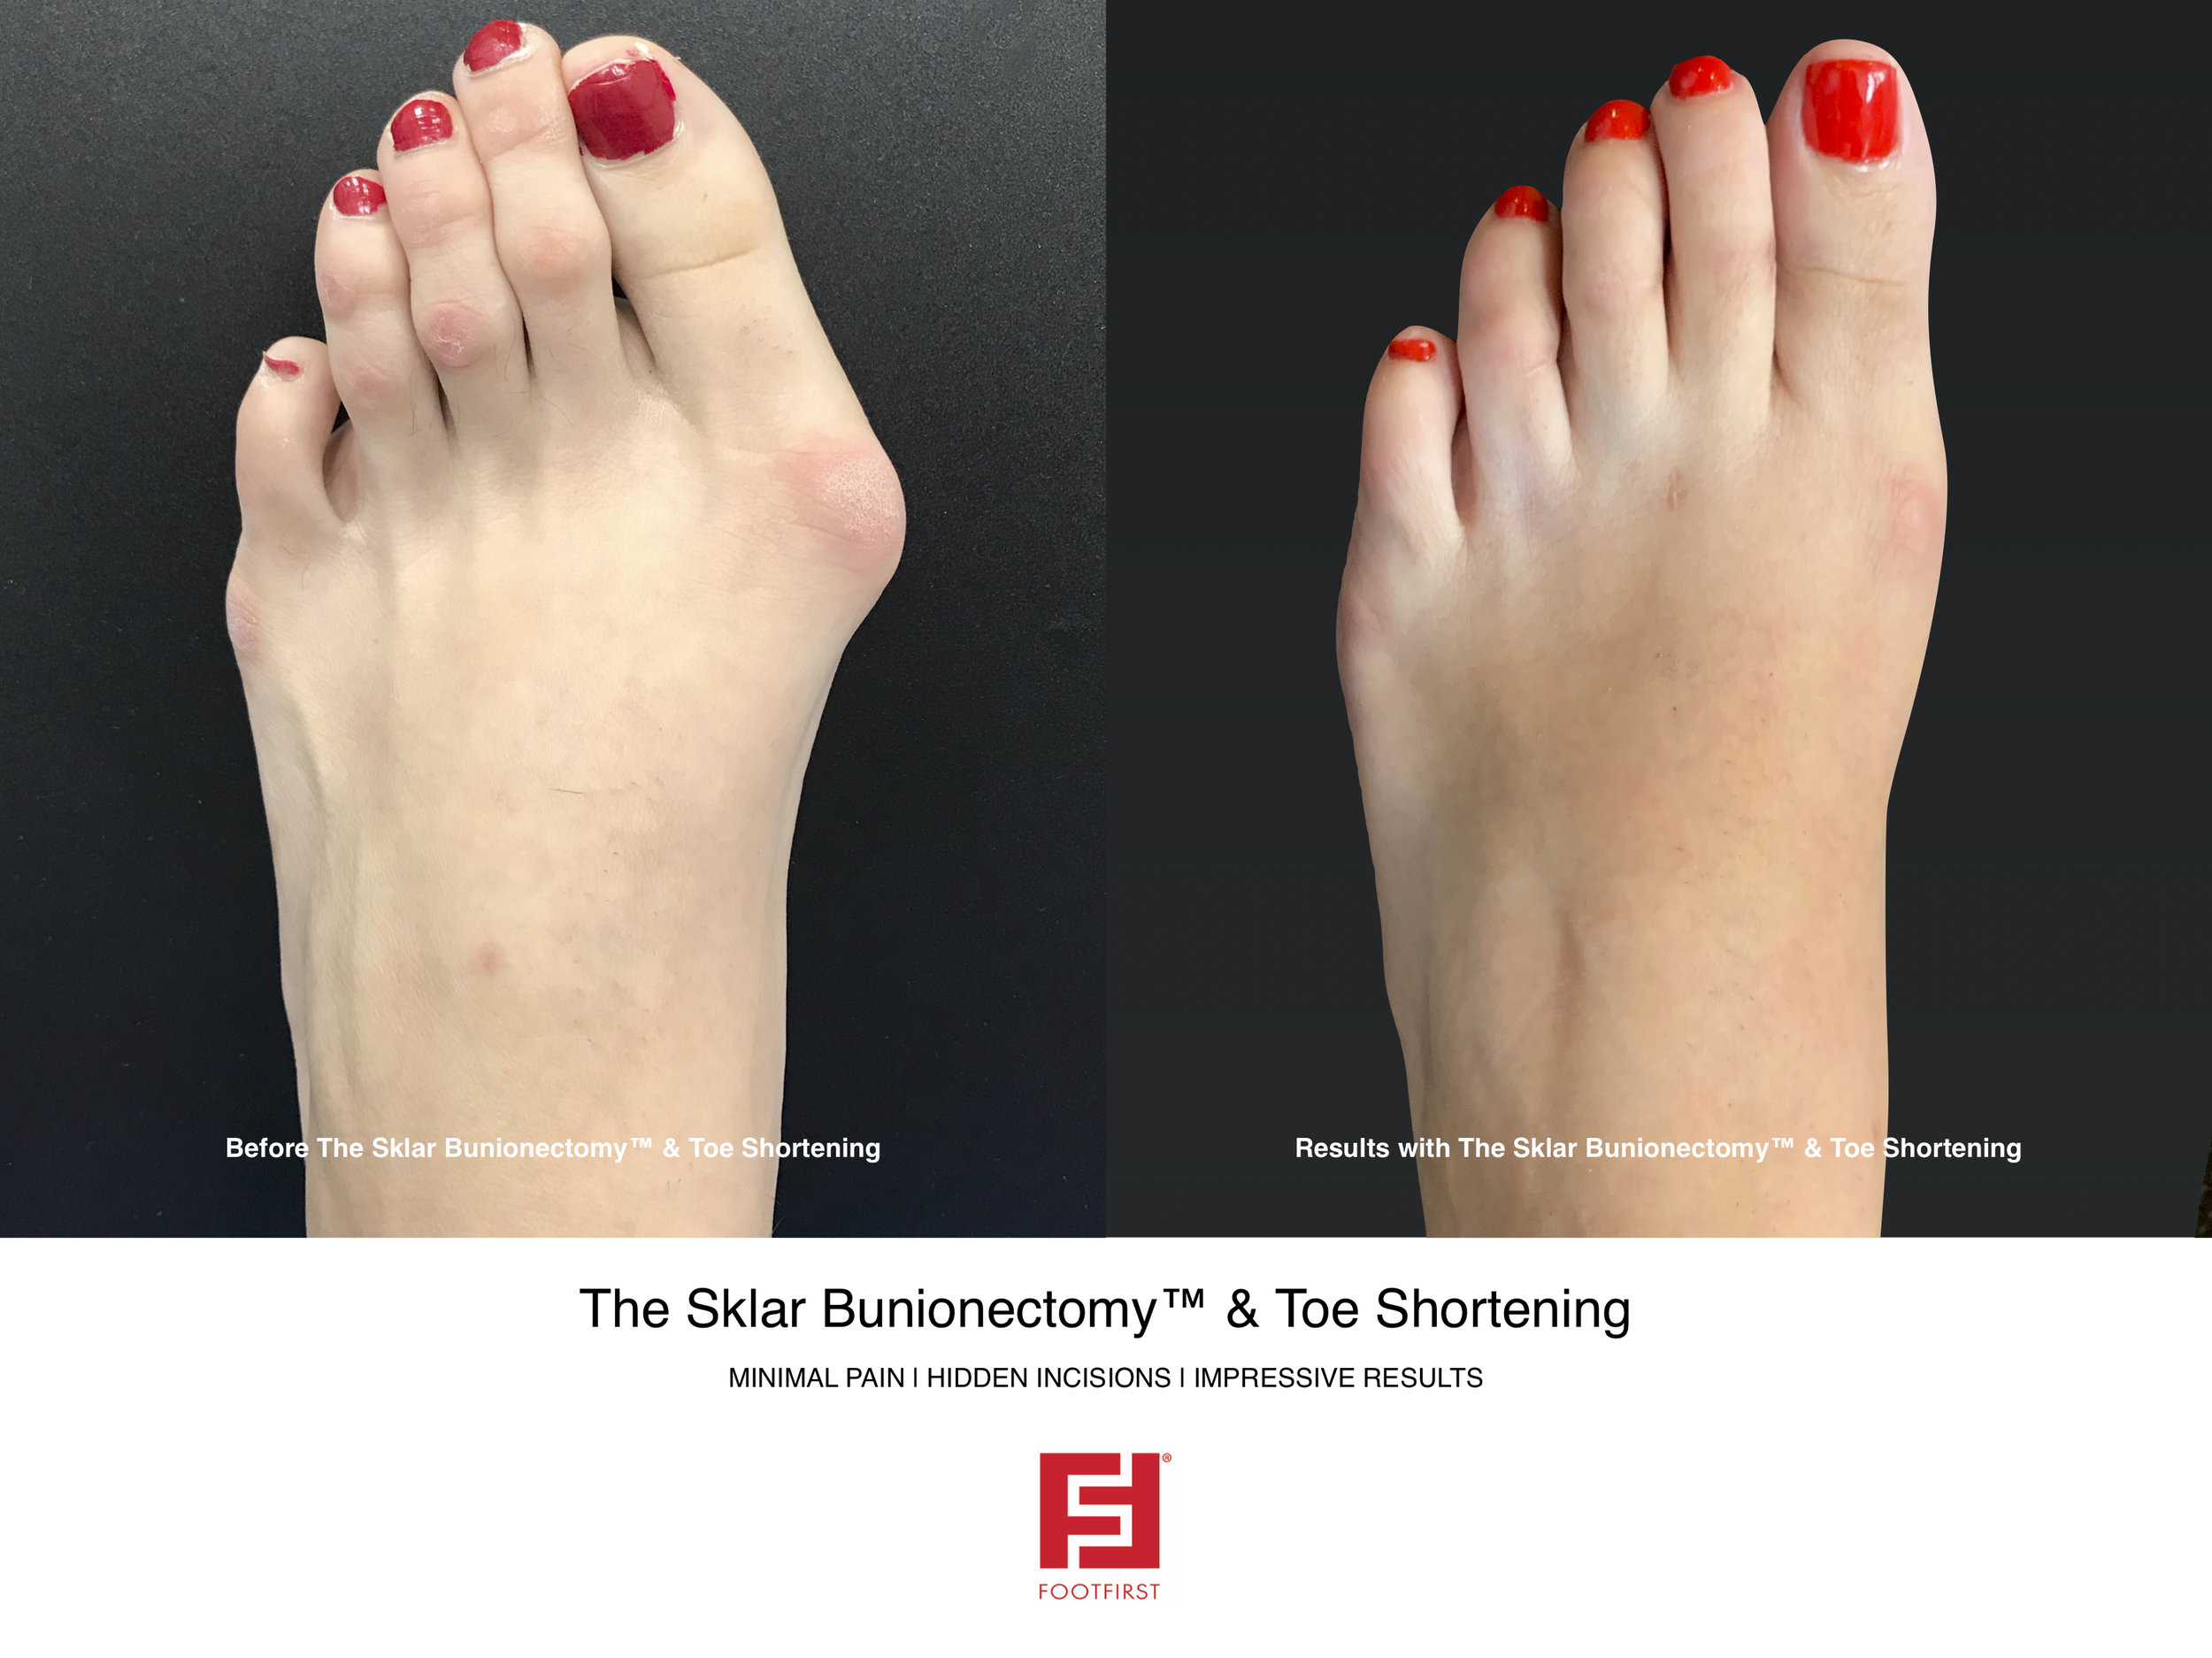 FF | www.footfirst.com - The Sklar Bunionectomy & Toe Shortening 1.jpg